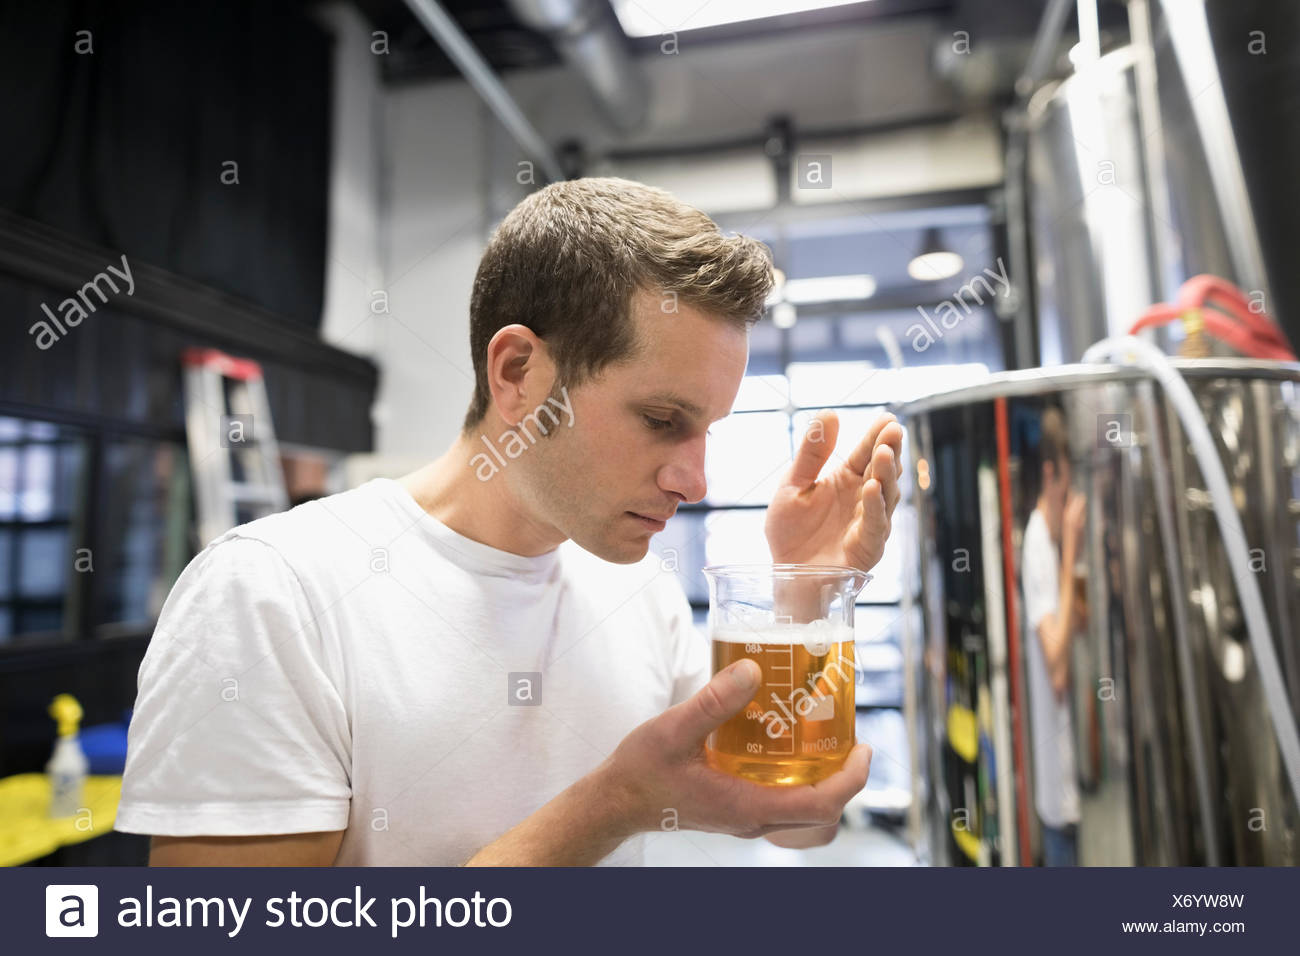 Male brewer smelling beaker of beer in brewery - Stock Image